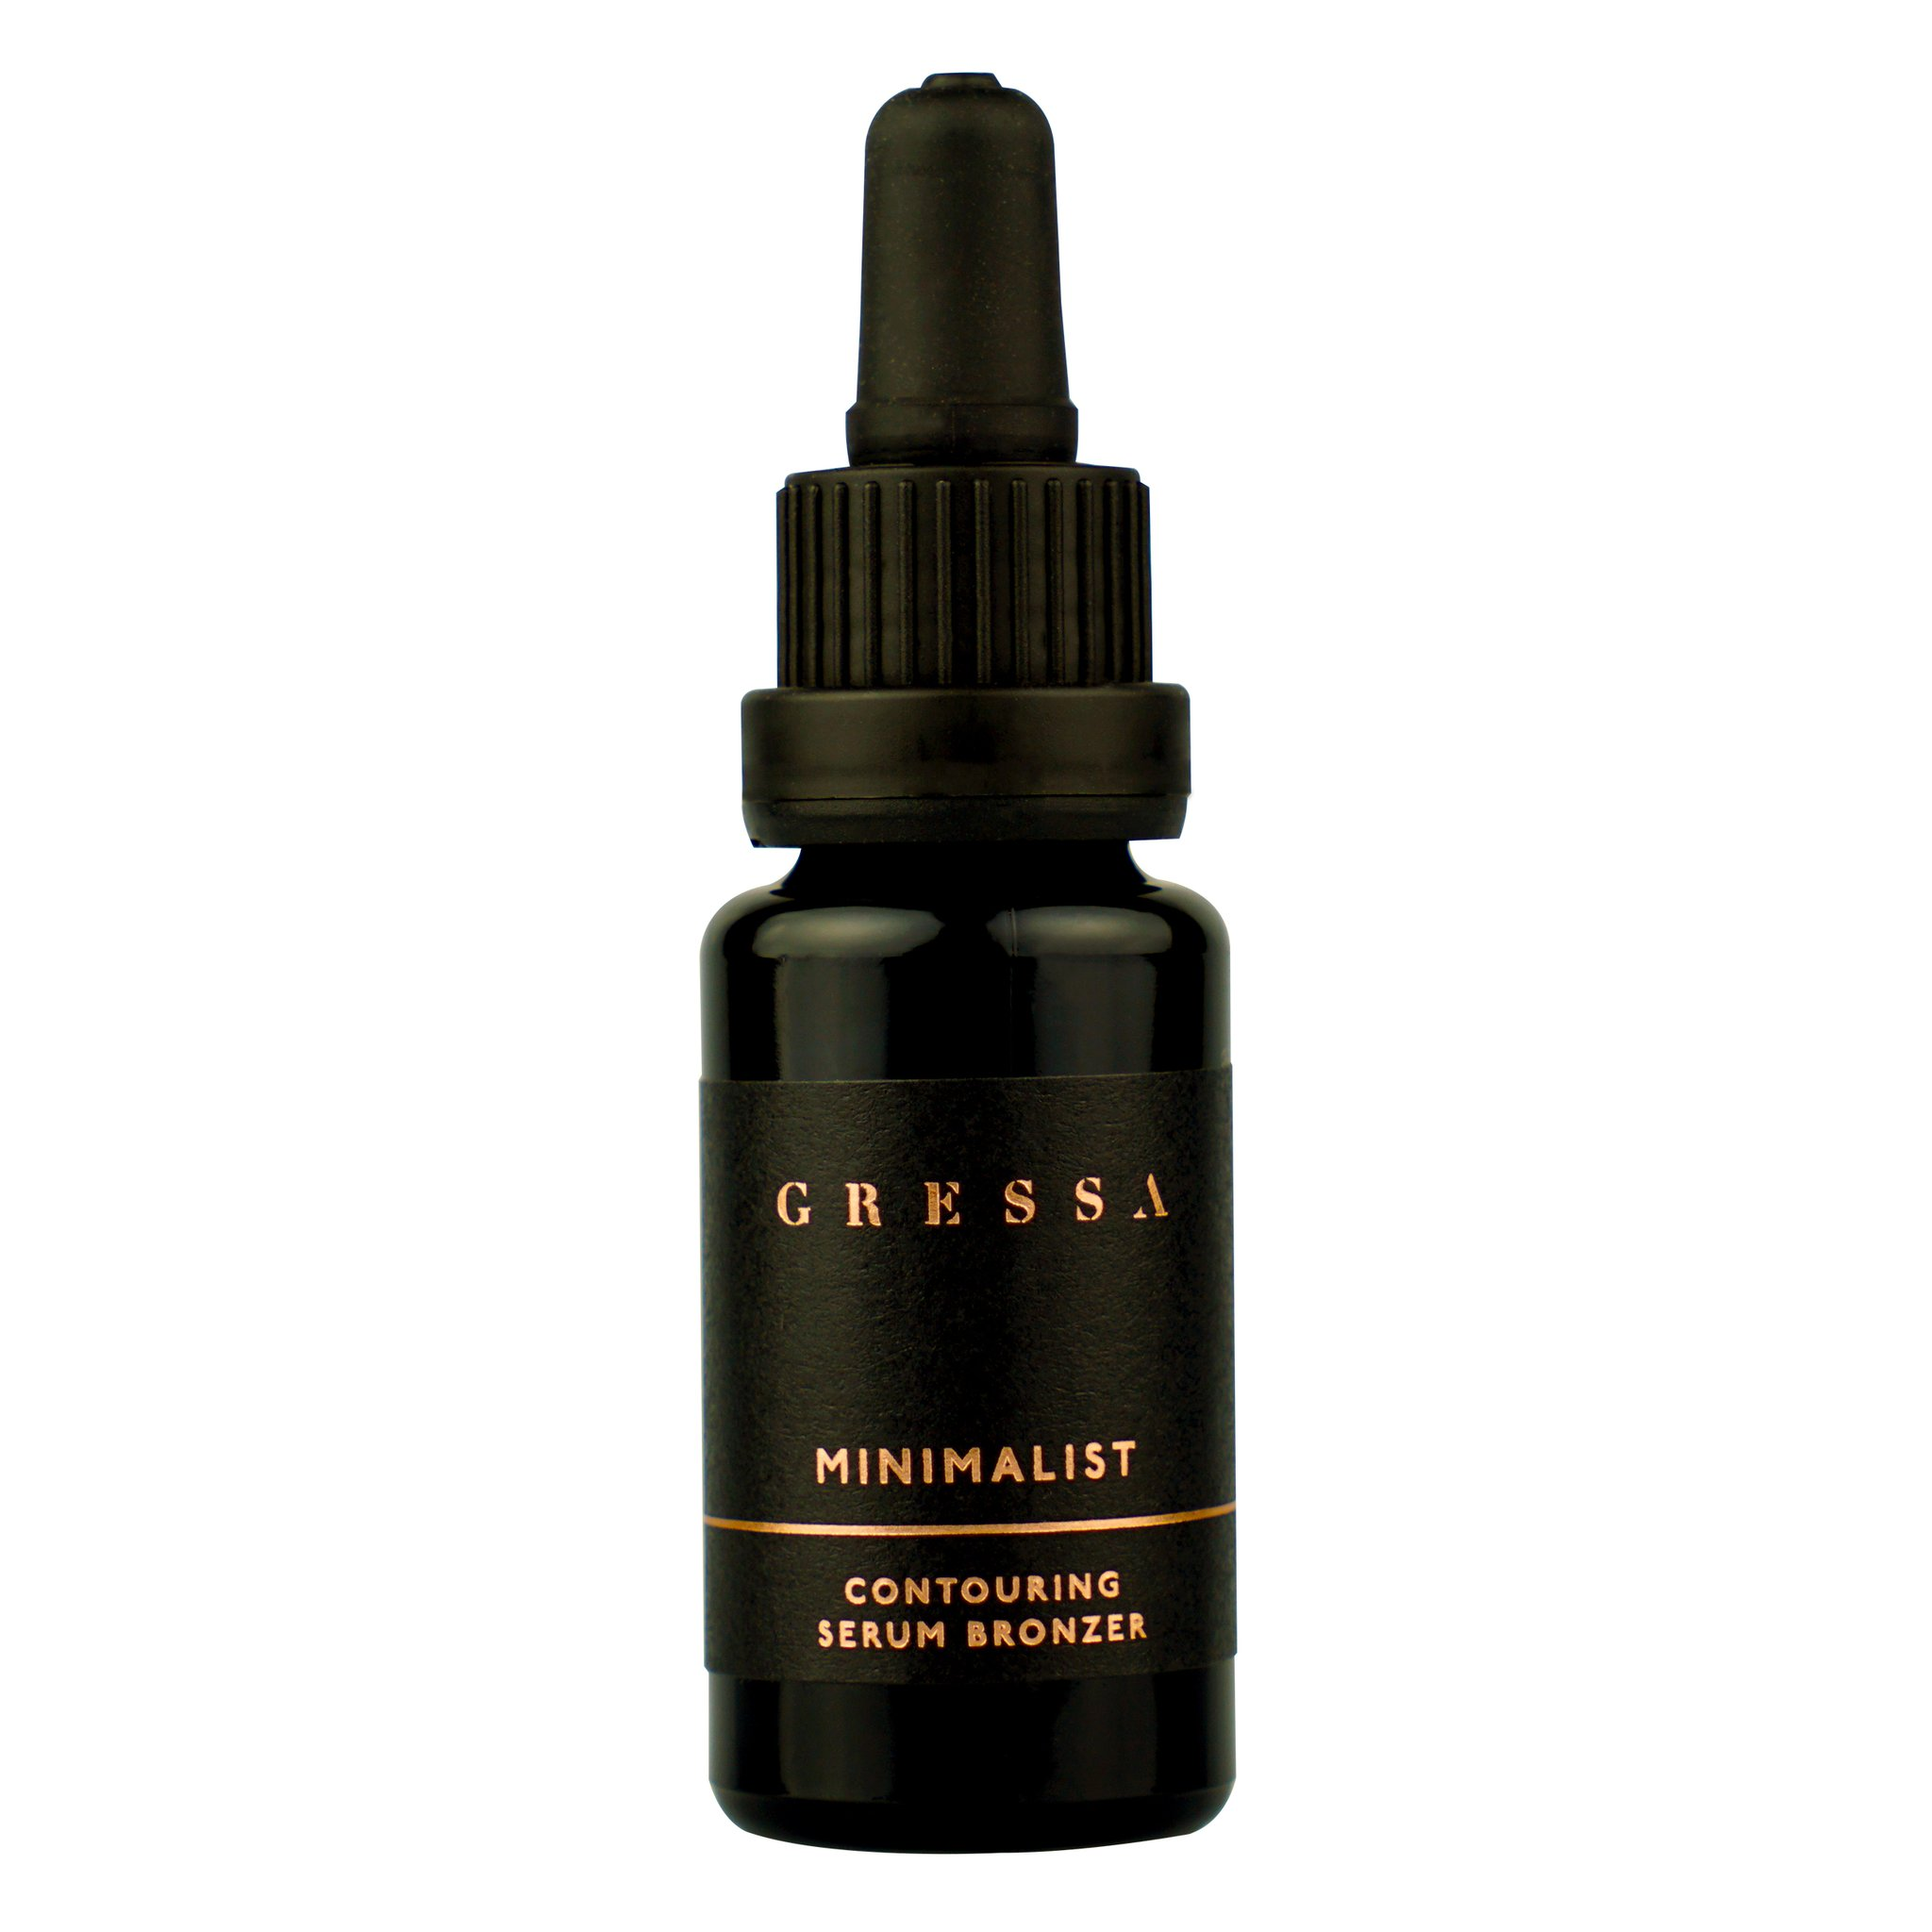 GRESSA MINIMALIST HIGHLIGHTING SERUM